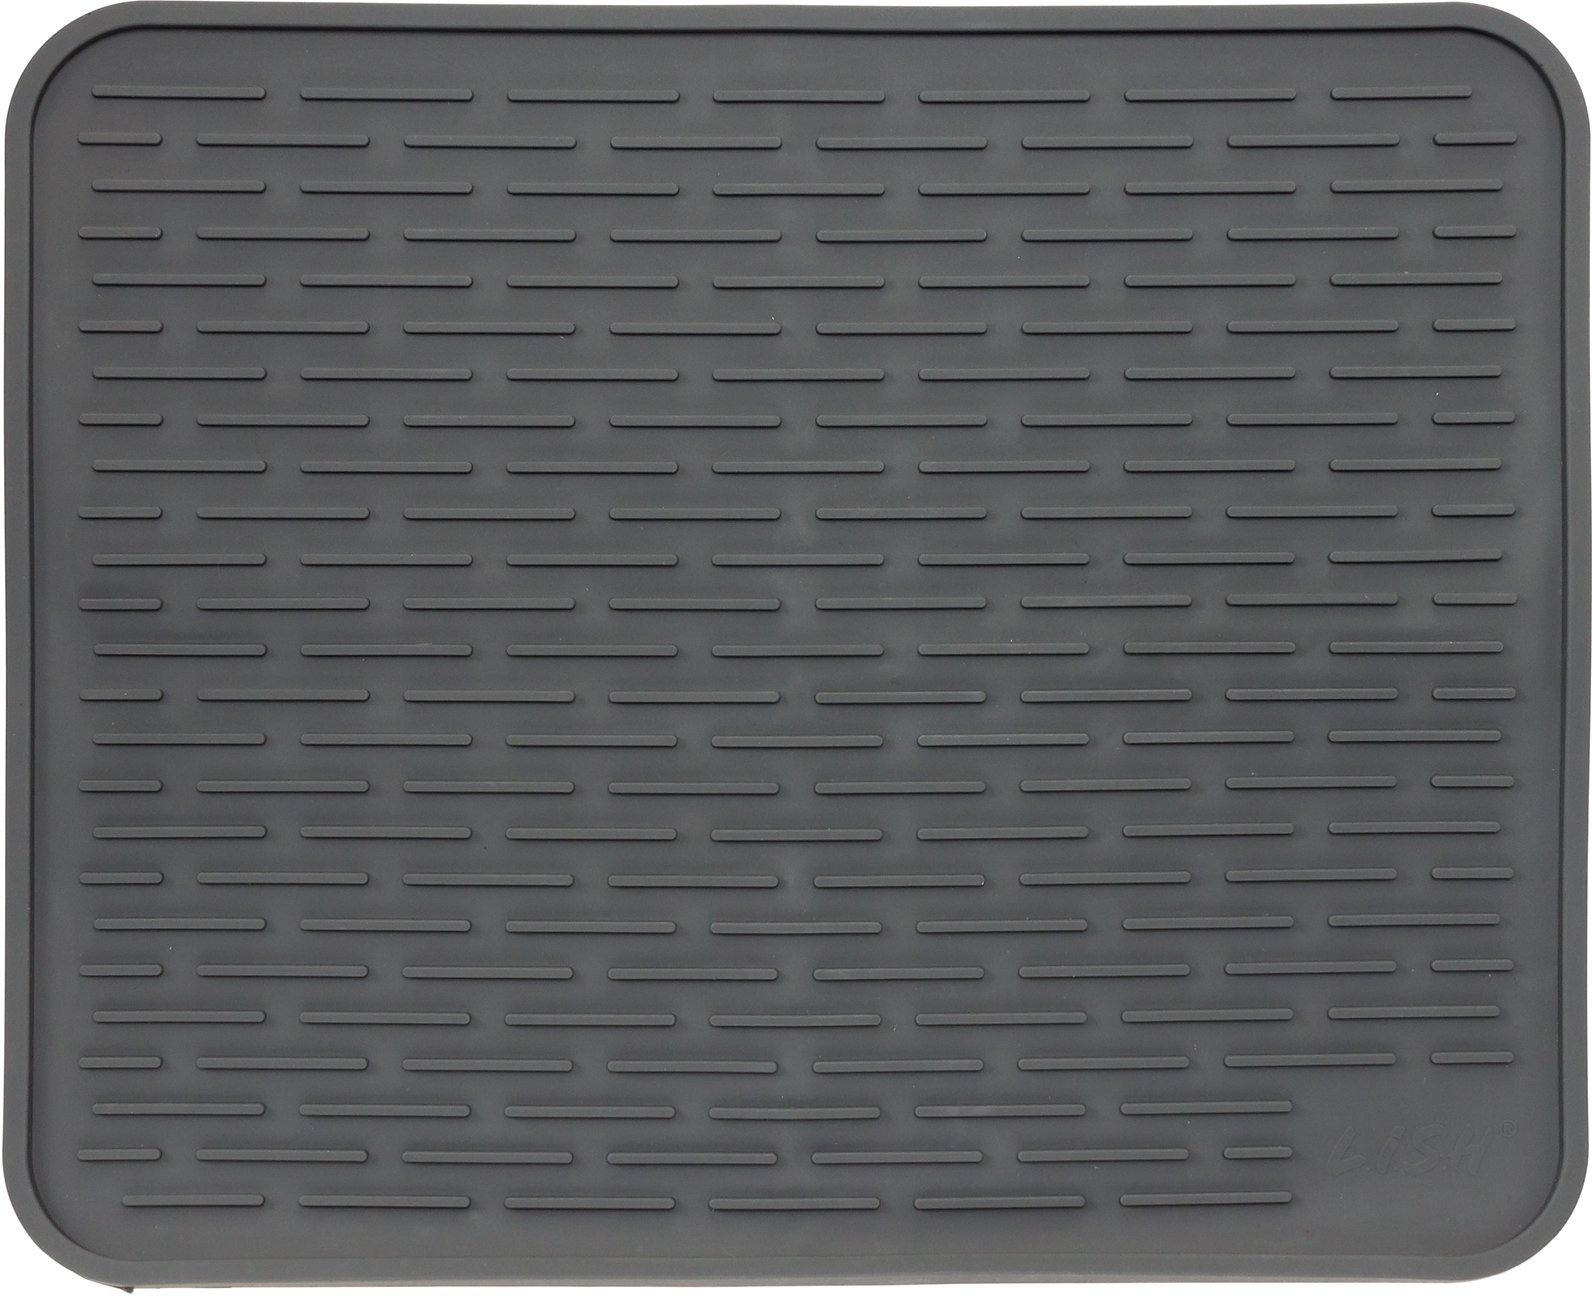 XXL Super Size Silicone Dish Drying Mat 24'' x 18'' - Large Drainer Mat and Trivet by LISH(Slate Grey)